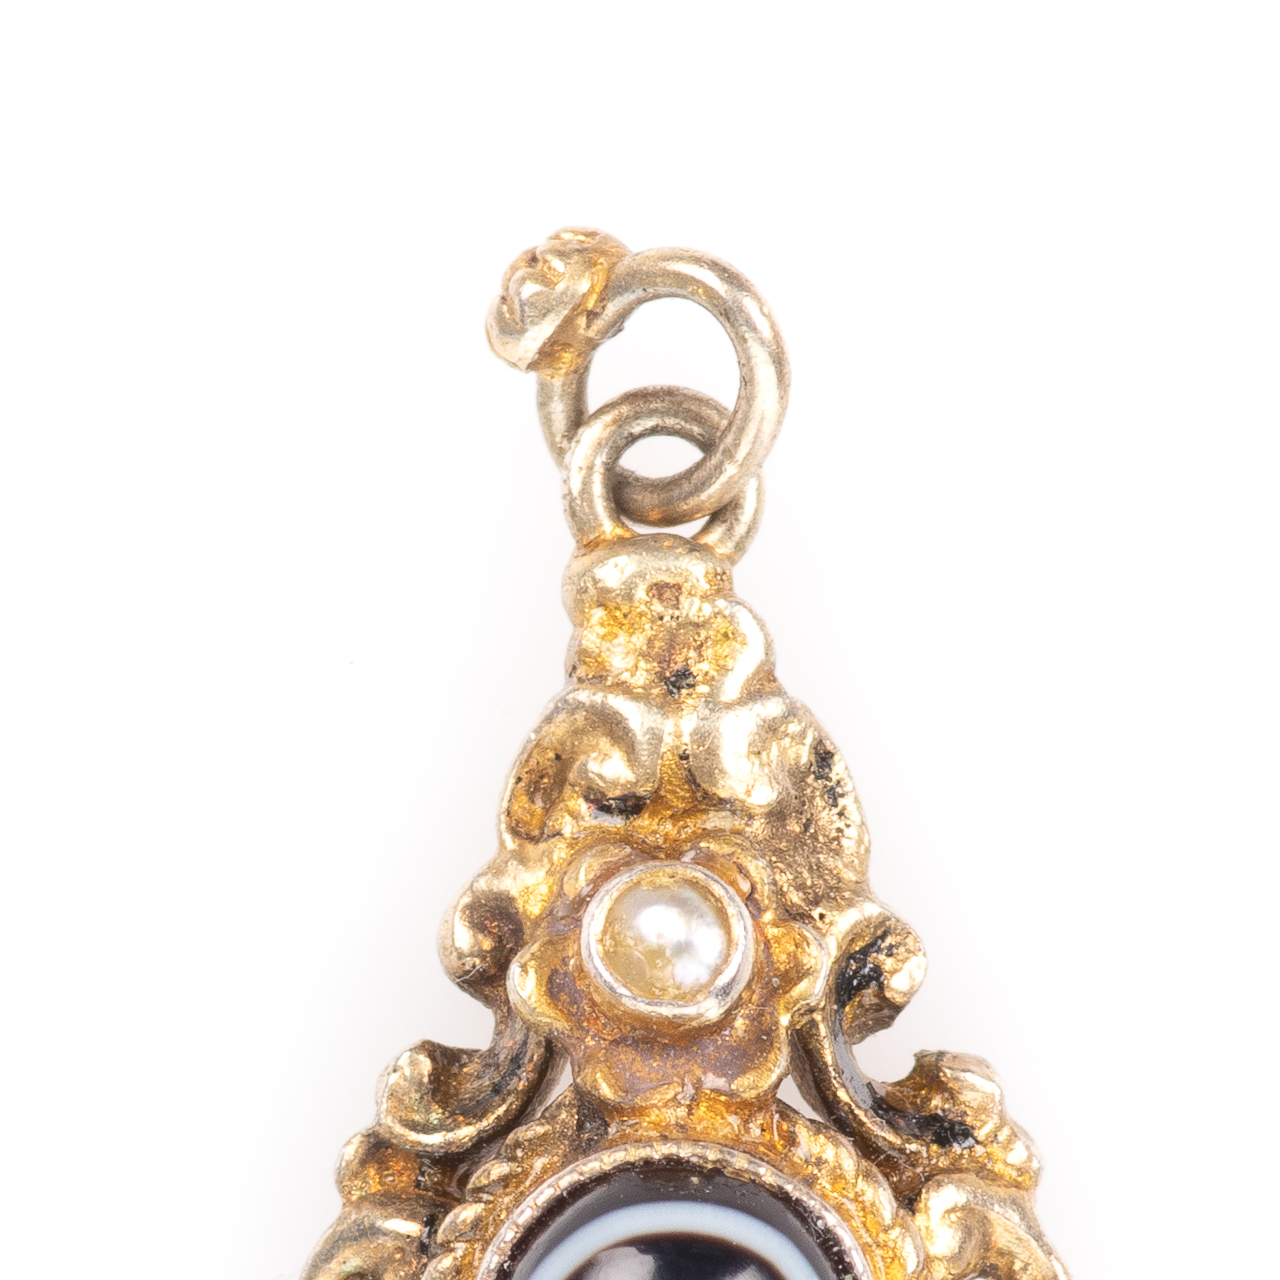 Momento Mori Pinchbeck Pearl & Banded Agate Victorian Pendant - Image 2 of 4